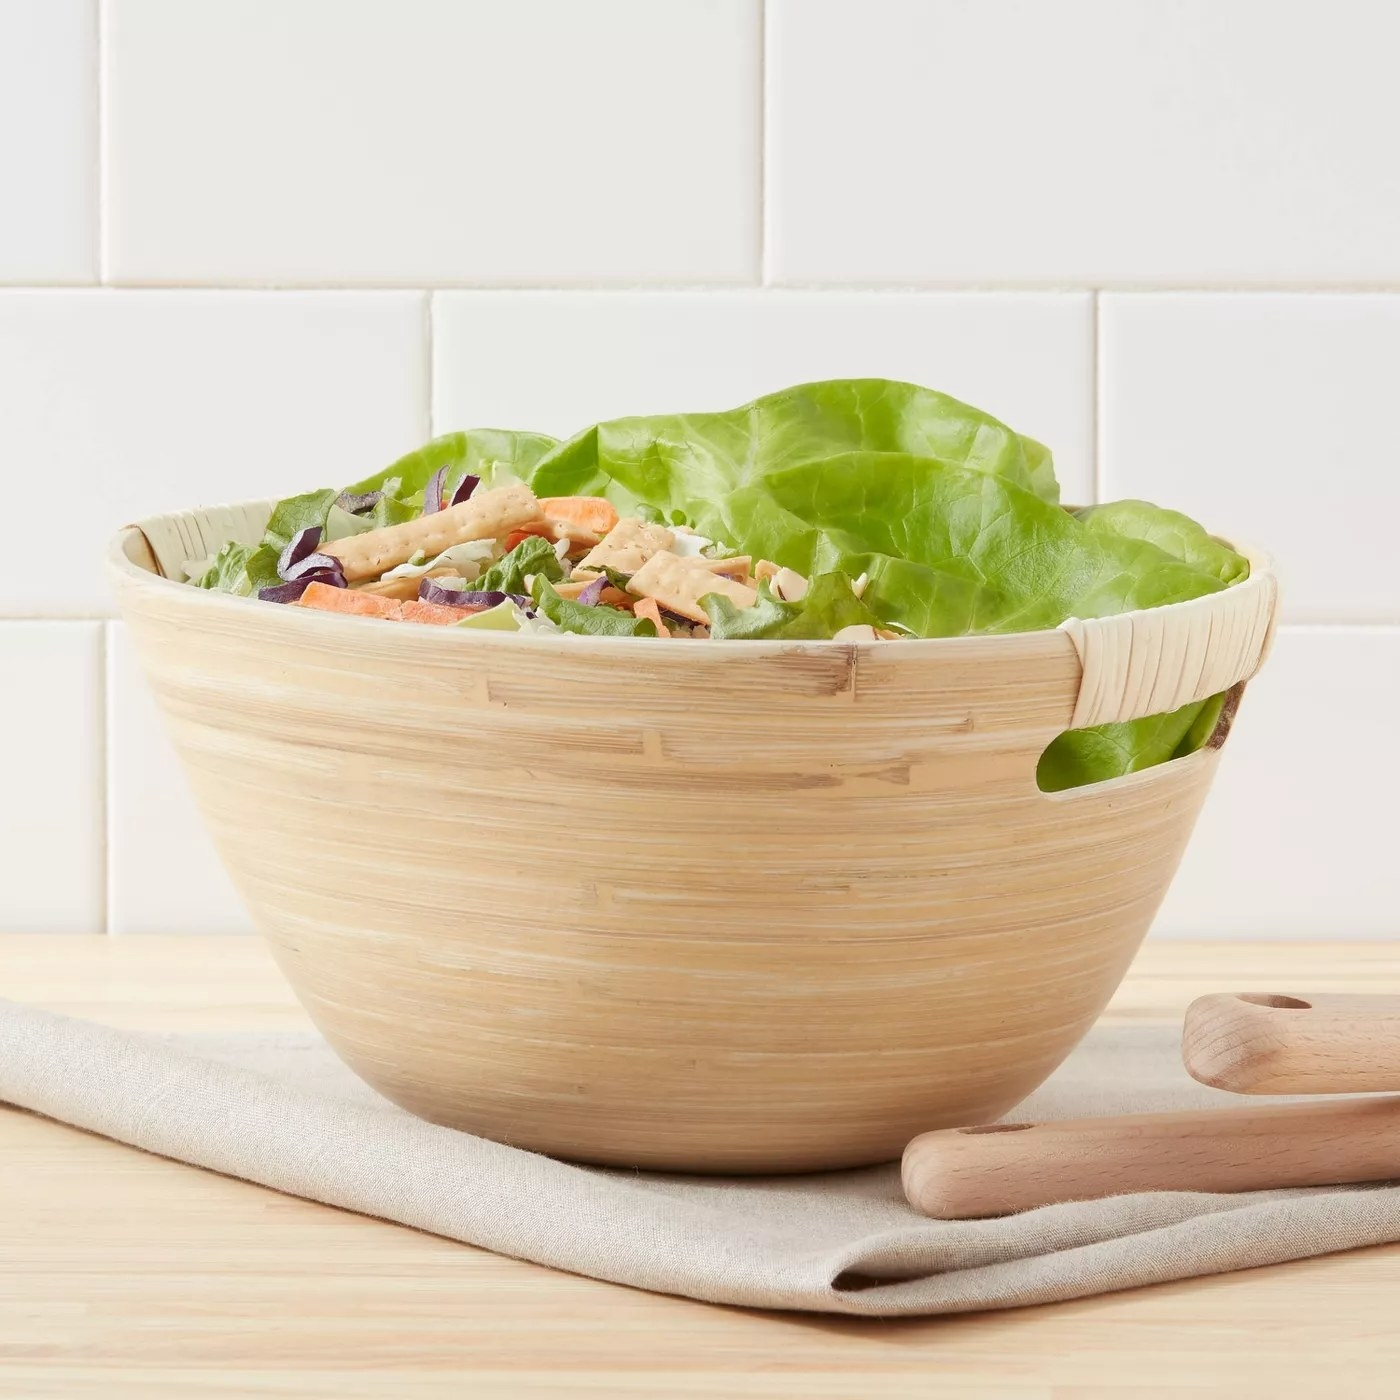 The bamboo spun serving bowl is full of salad and has utensils nearby